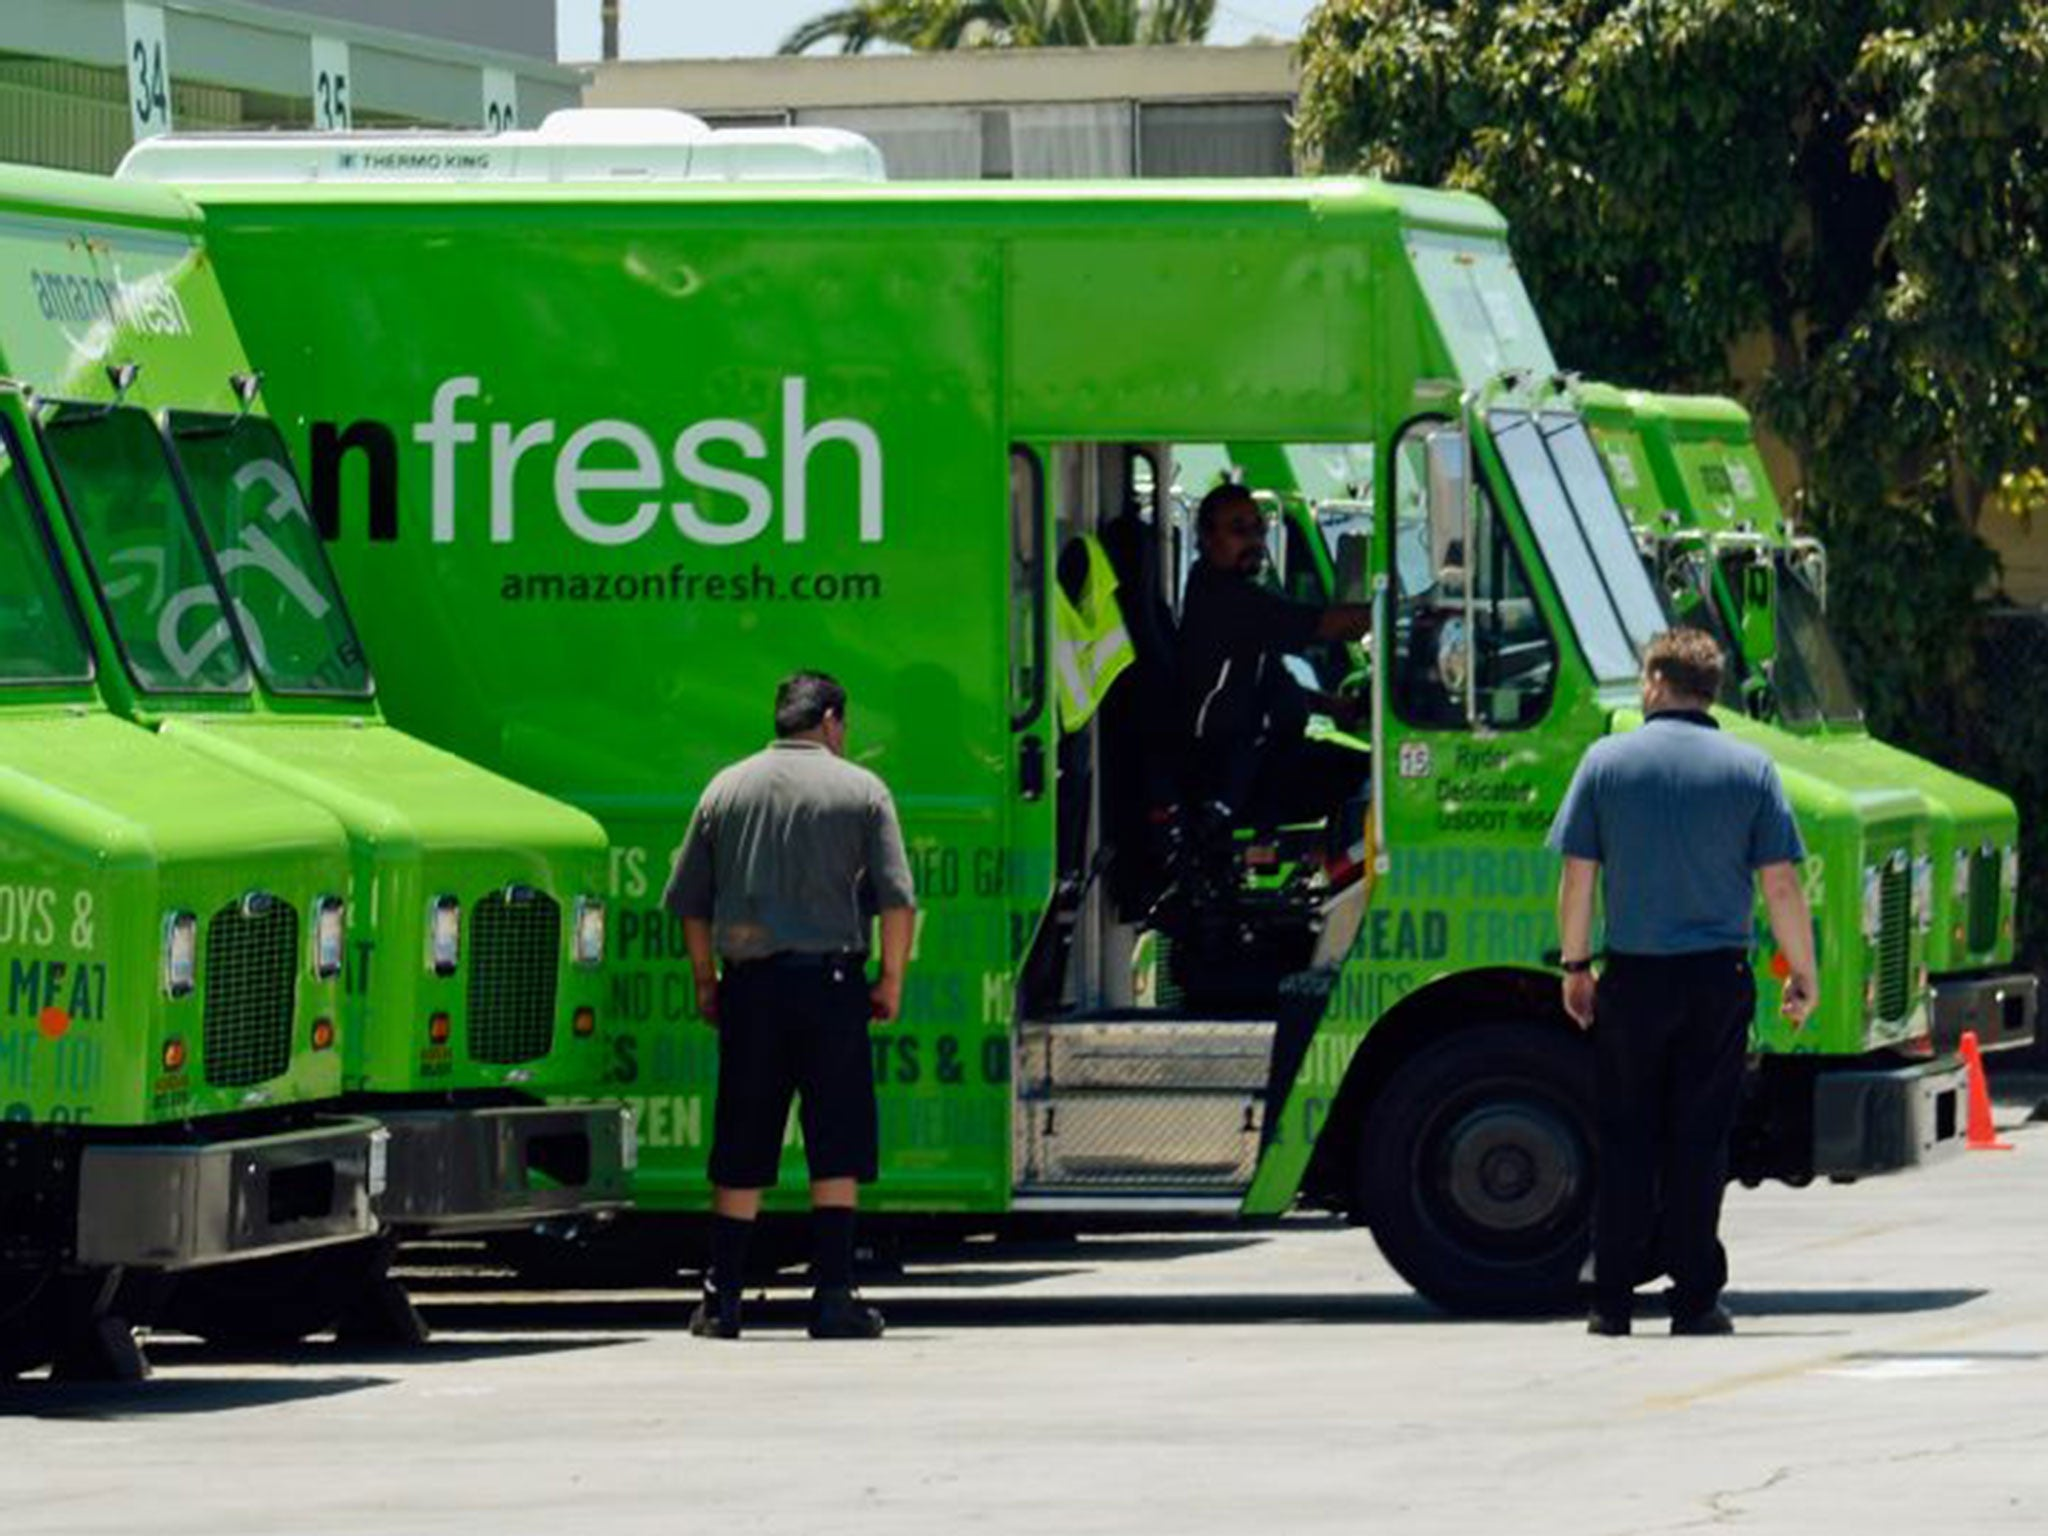 amazon fresh refusing to deliver to customers living 200m